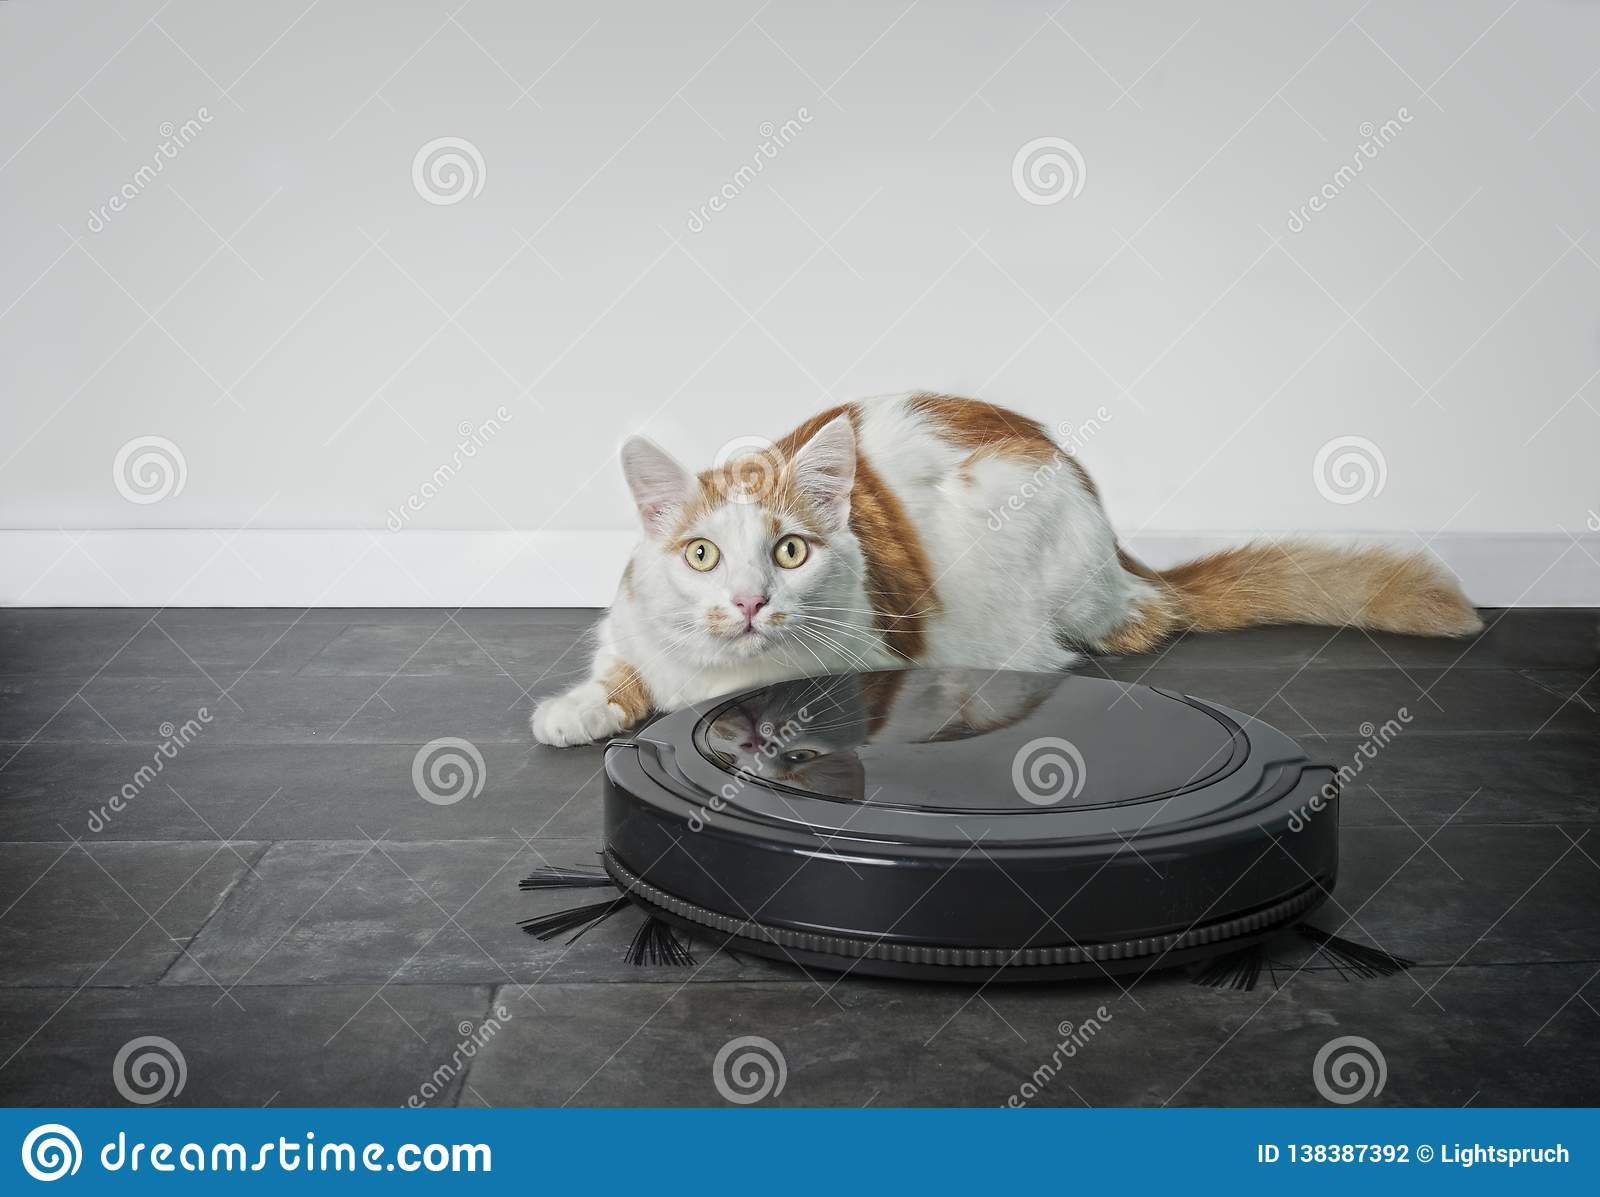 Funny tabby cat looking curious behind a robot vacuum cleaner.